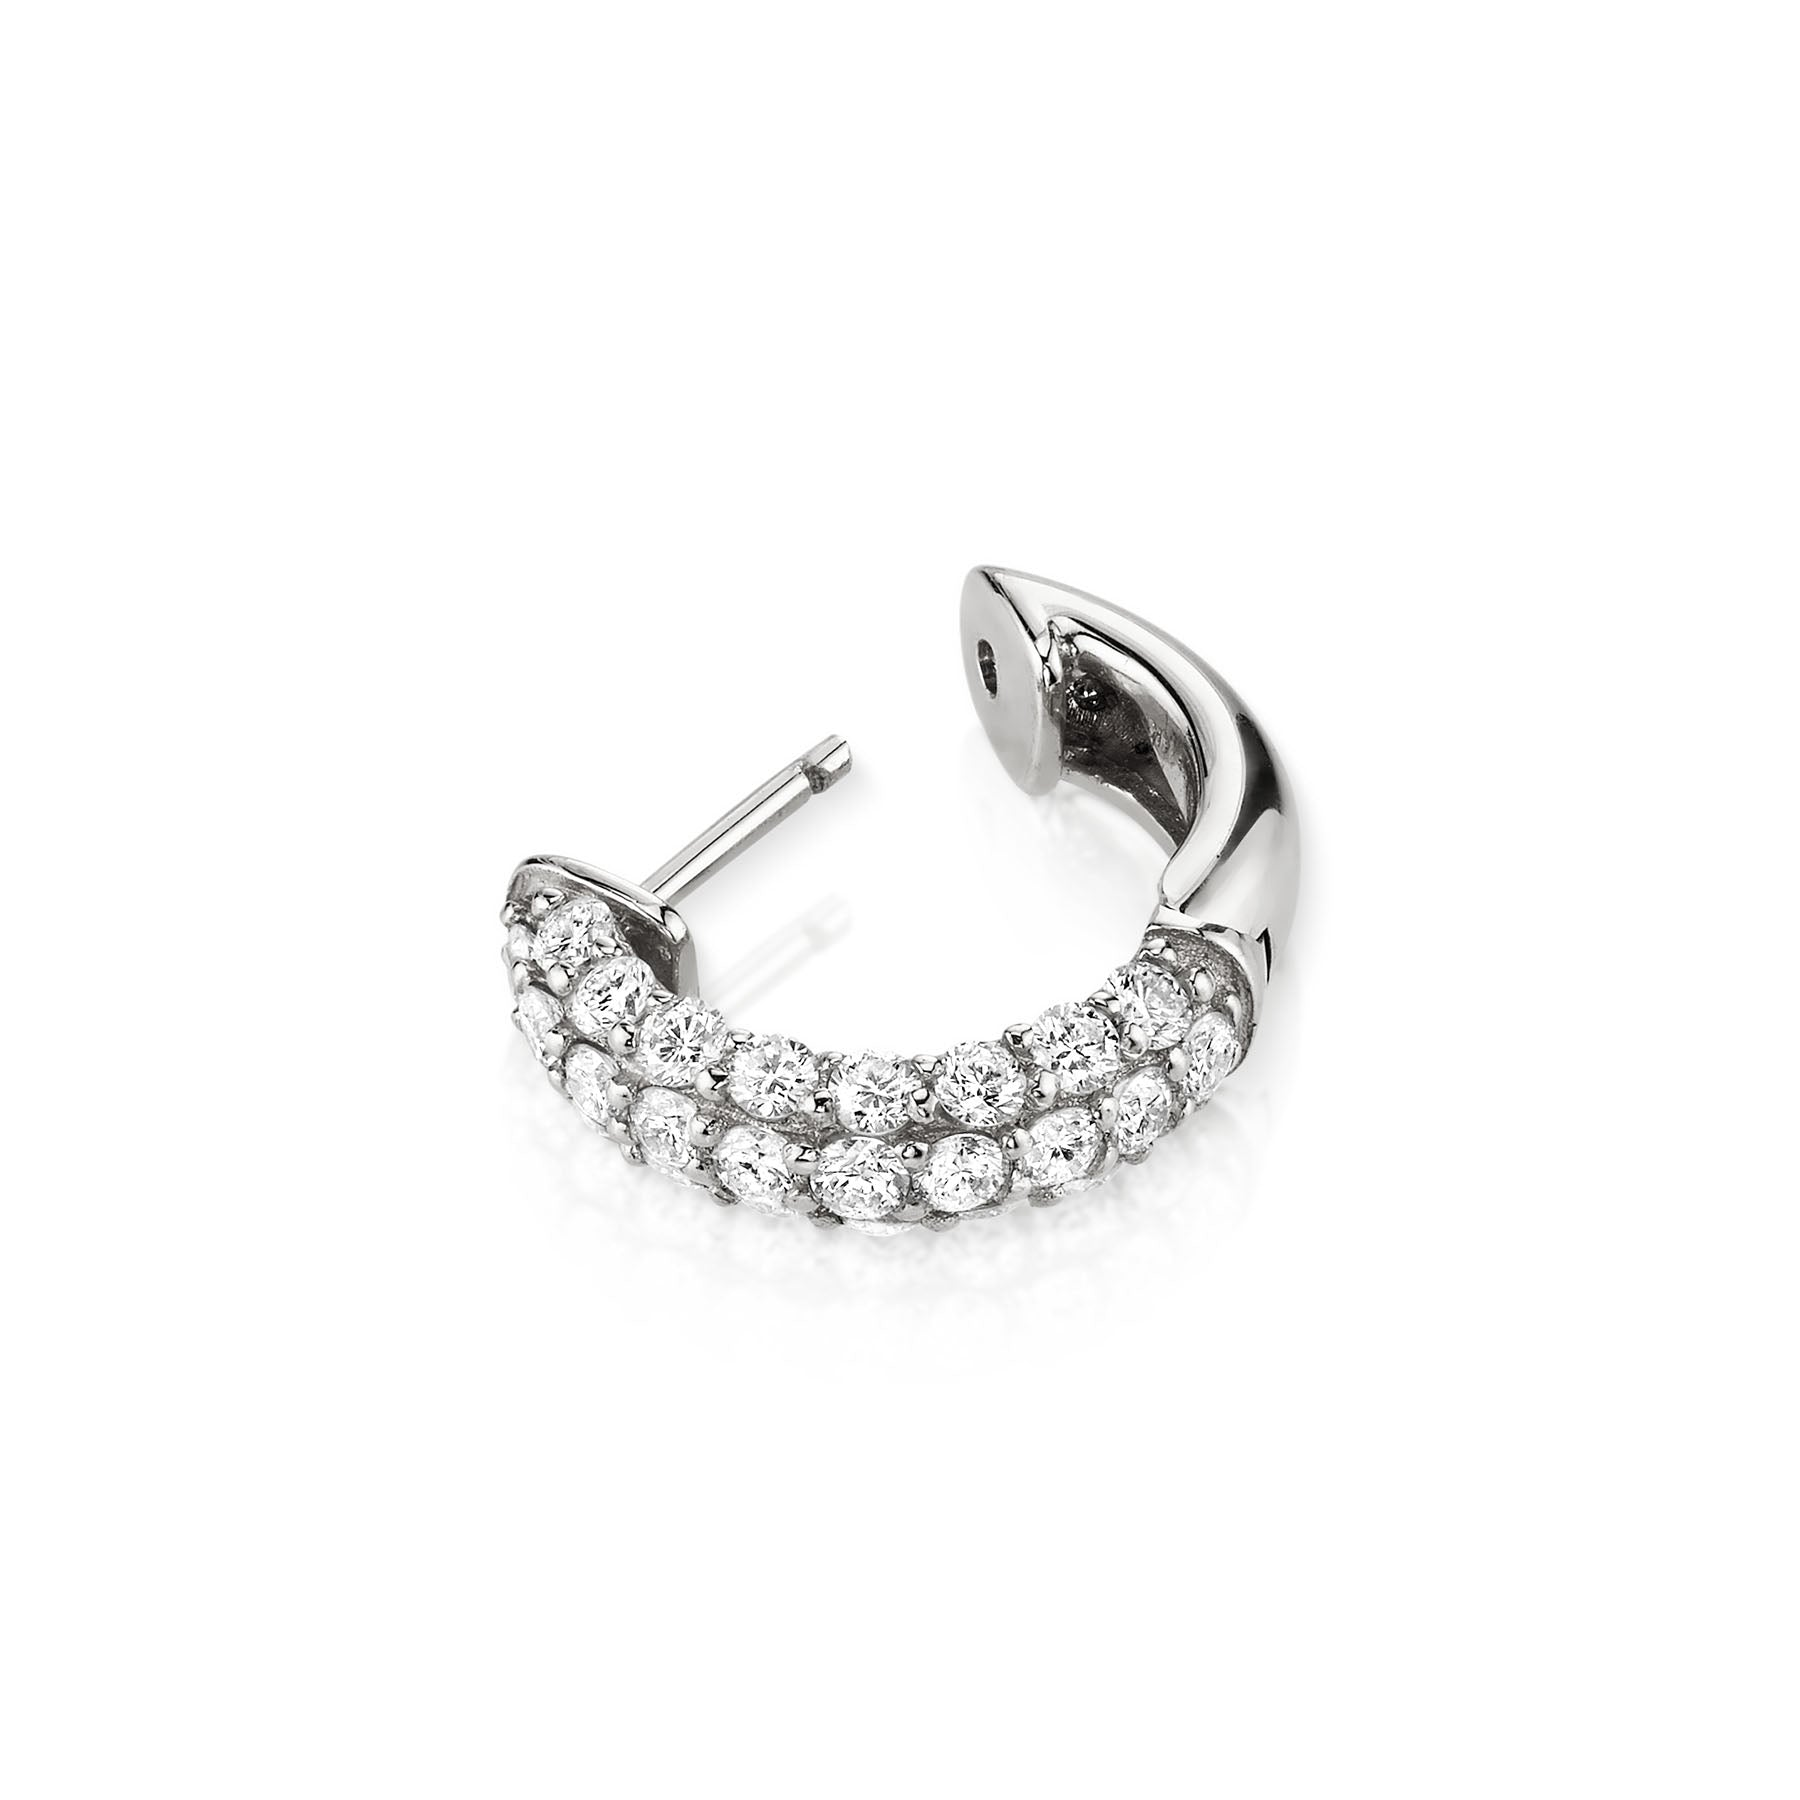 DIAMOND PAVÉ WIDE HOOP EARRING